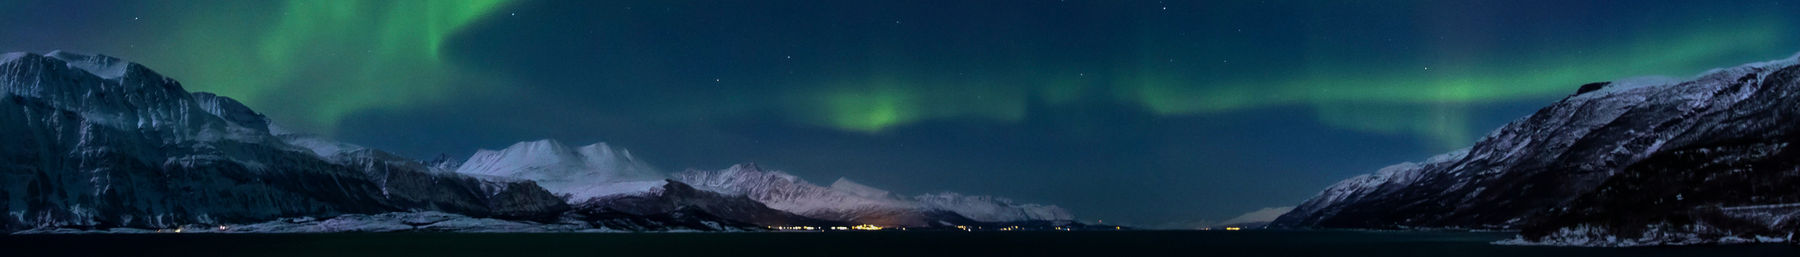 Northern Lights-banner1.jpg